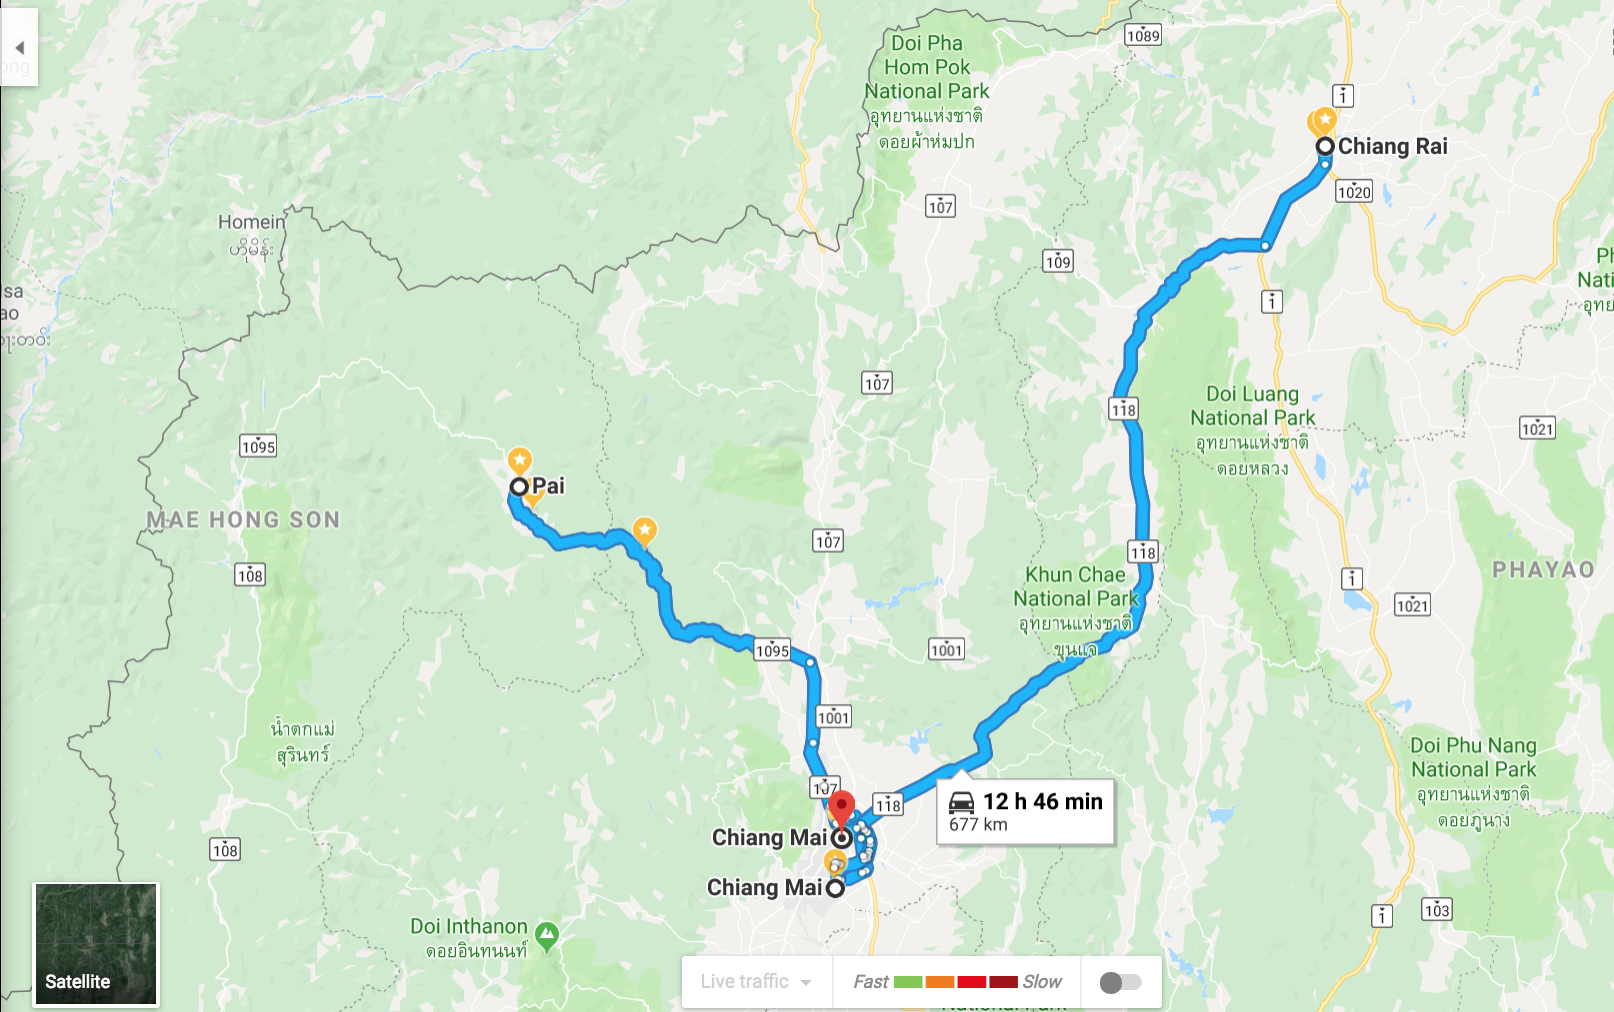 Thailand itinerary 10 days: time it takes to go from chiang mai to pai to chiang mai to chiang rai and back to chiang mai